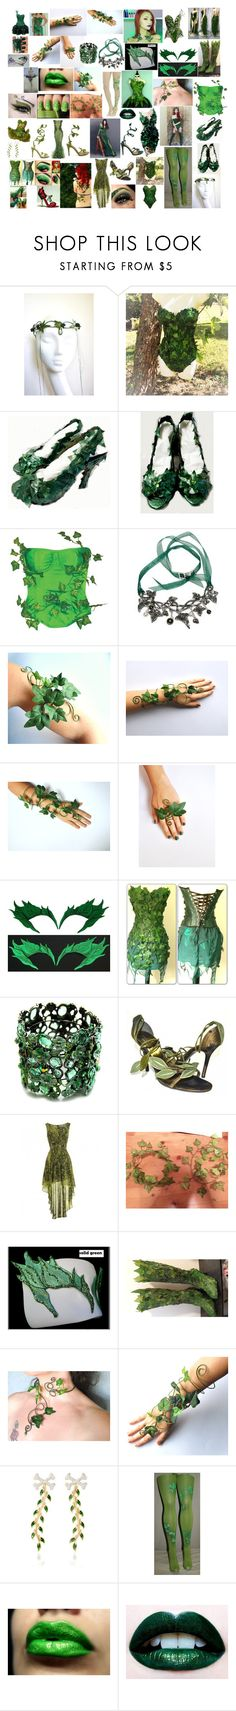 """""""Halloween Costumes - Poison Ivy"""" by wastedstalker ❤ liked on Polyvore featuring Victoria's Secret, Behance, Yanina, Fantasy Jewelry Box, Valentino, Alison Lou, Wet n Wild, Lime Crime and halloweencostumes"""